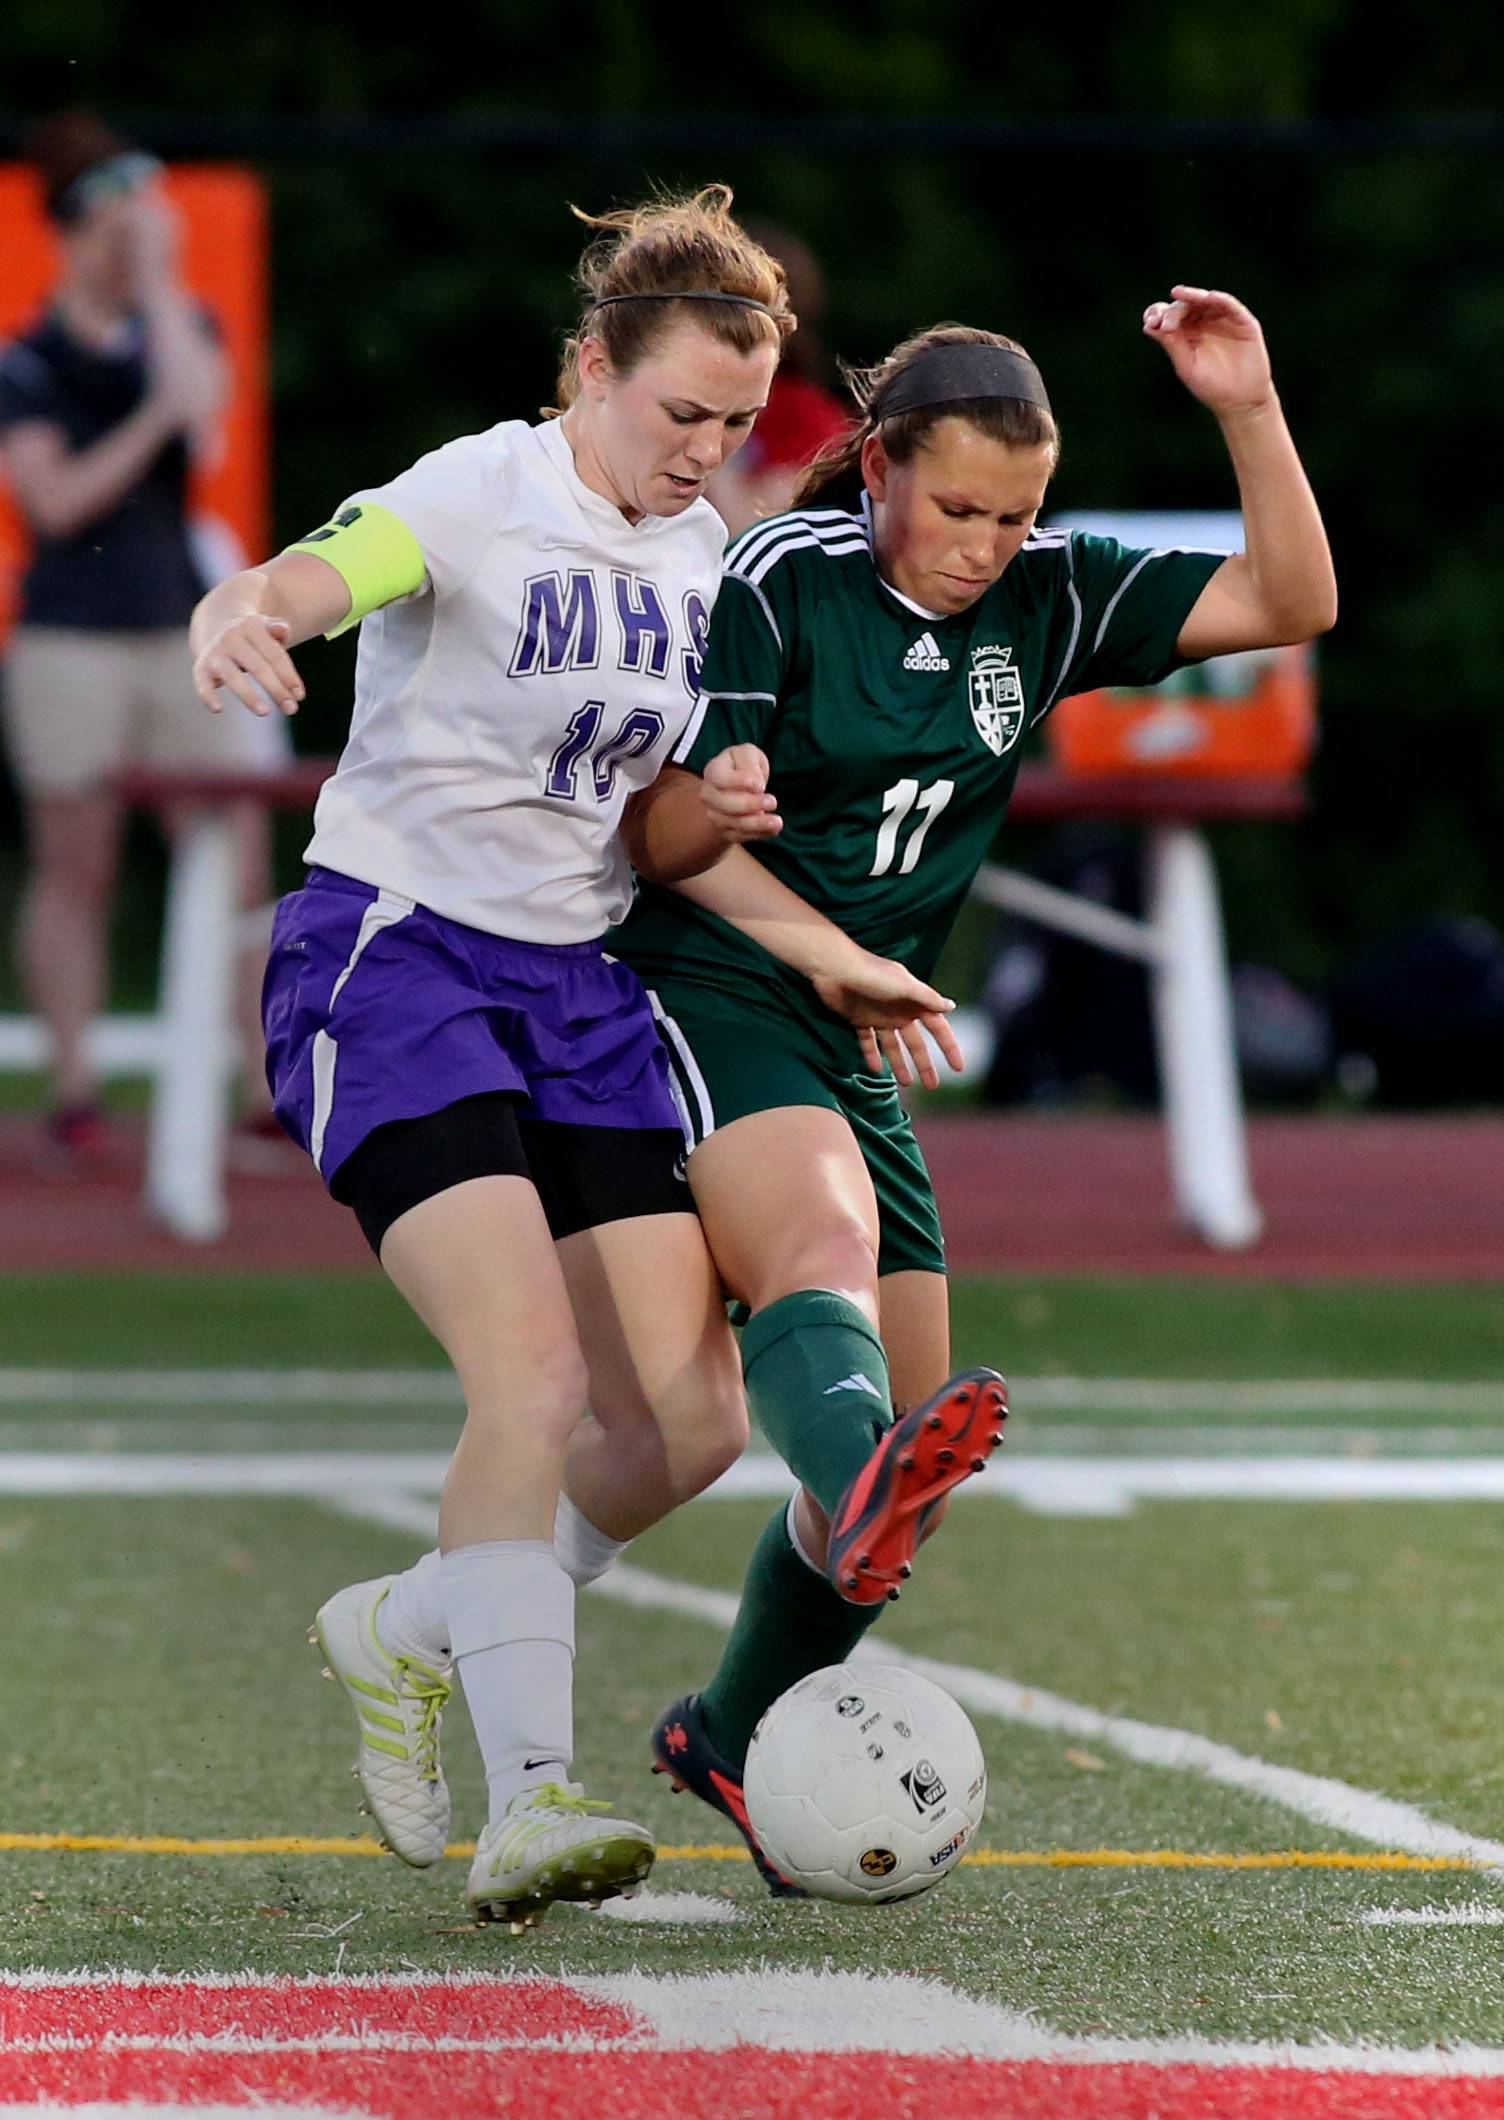 St. Edward's Allison Kruk, right, gets a foot on the ball in action against Hannah Ondrey of Manteno, left, during the Class 1A state soccer semifinals at North Central College in Naperville on Friday.